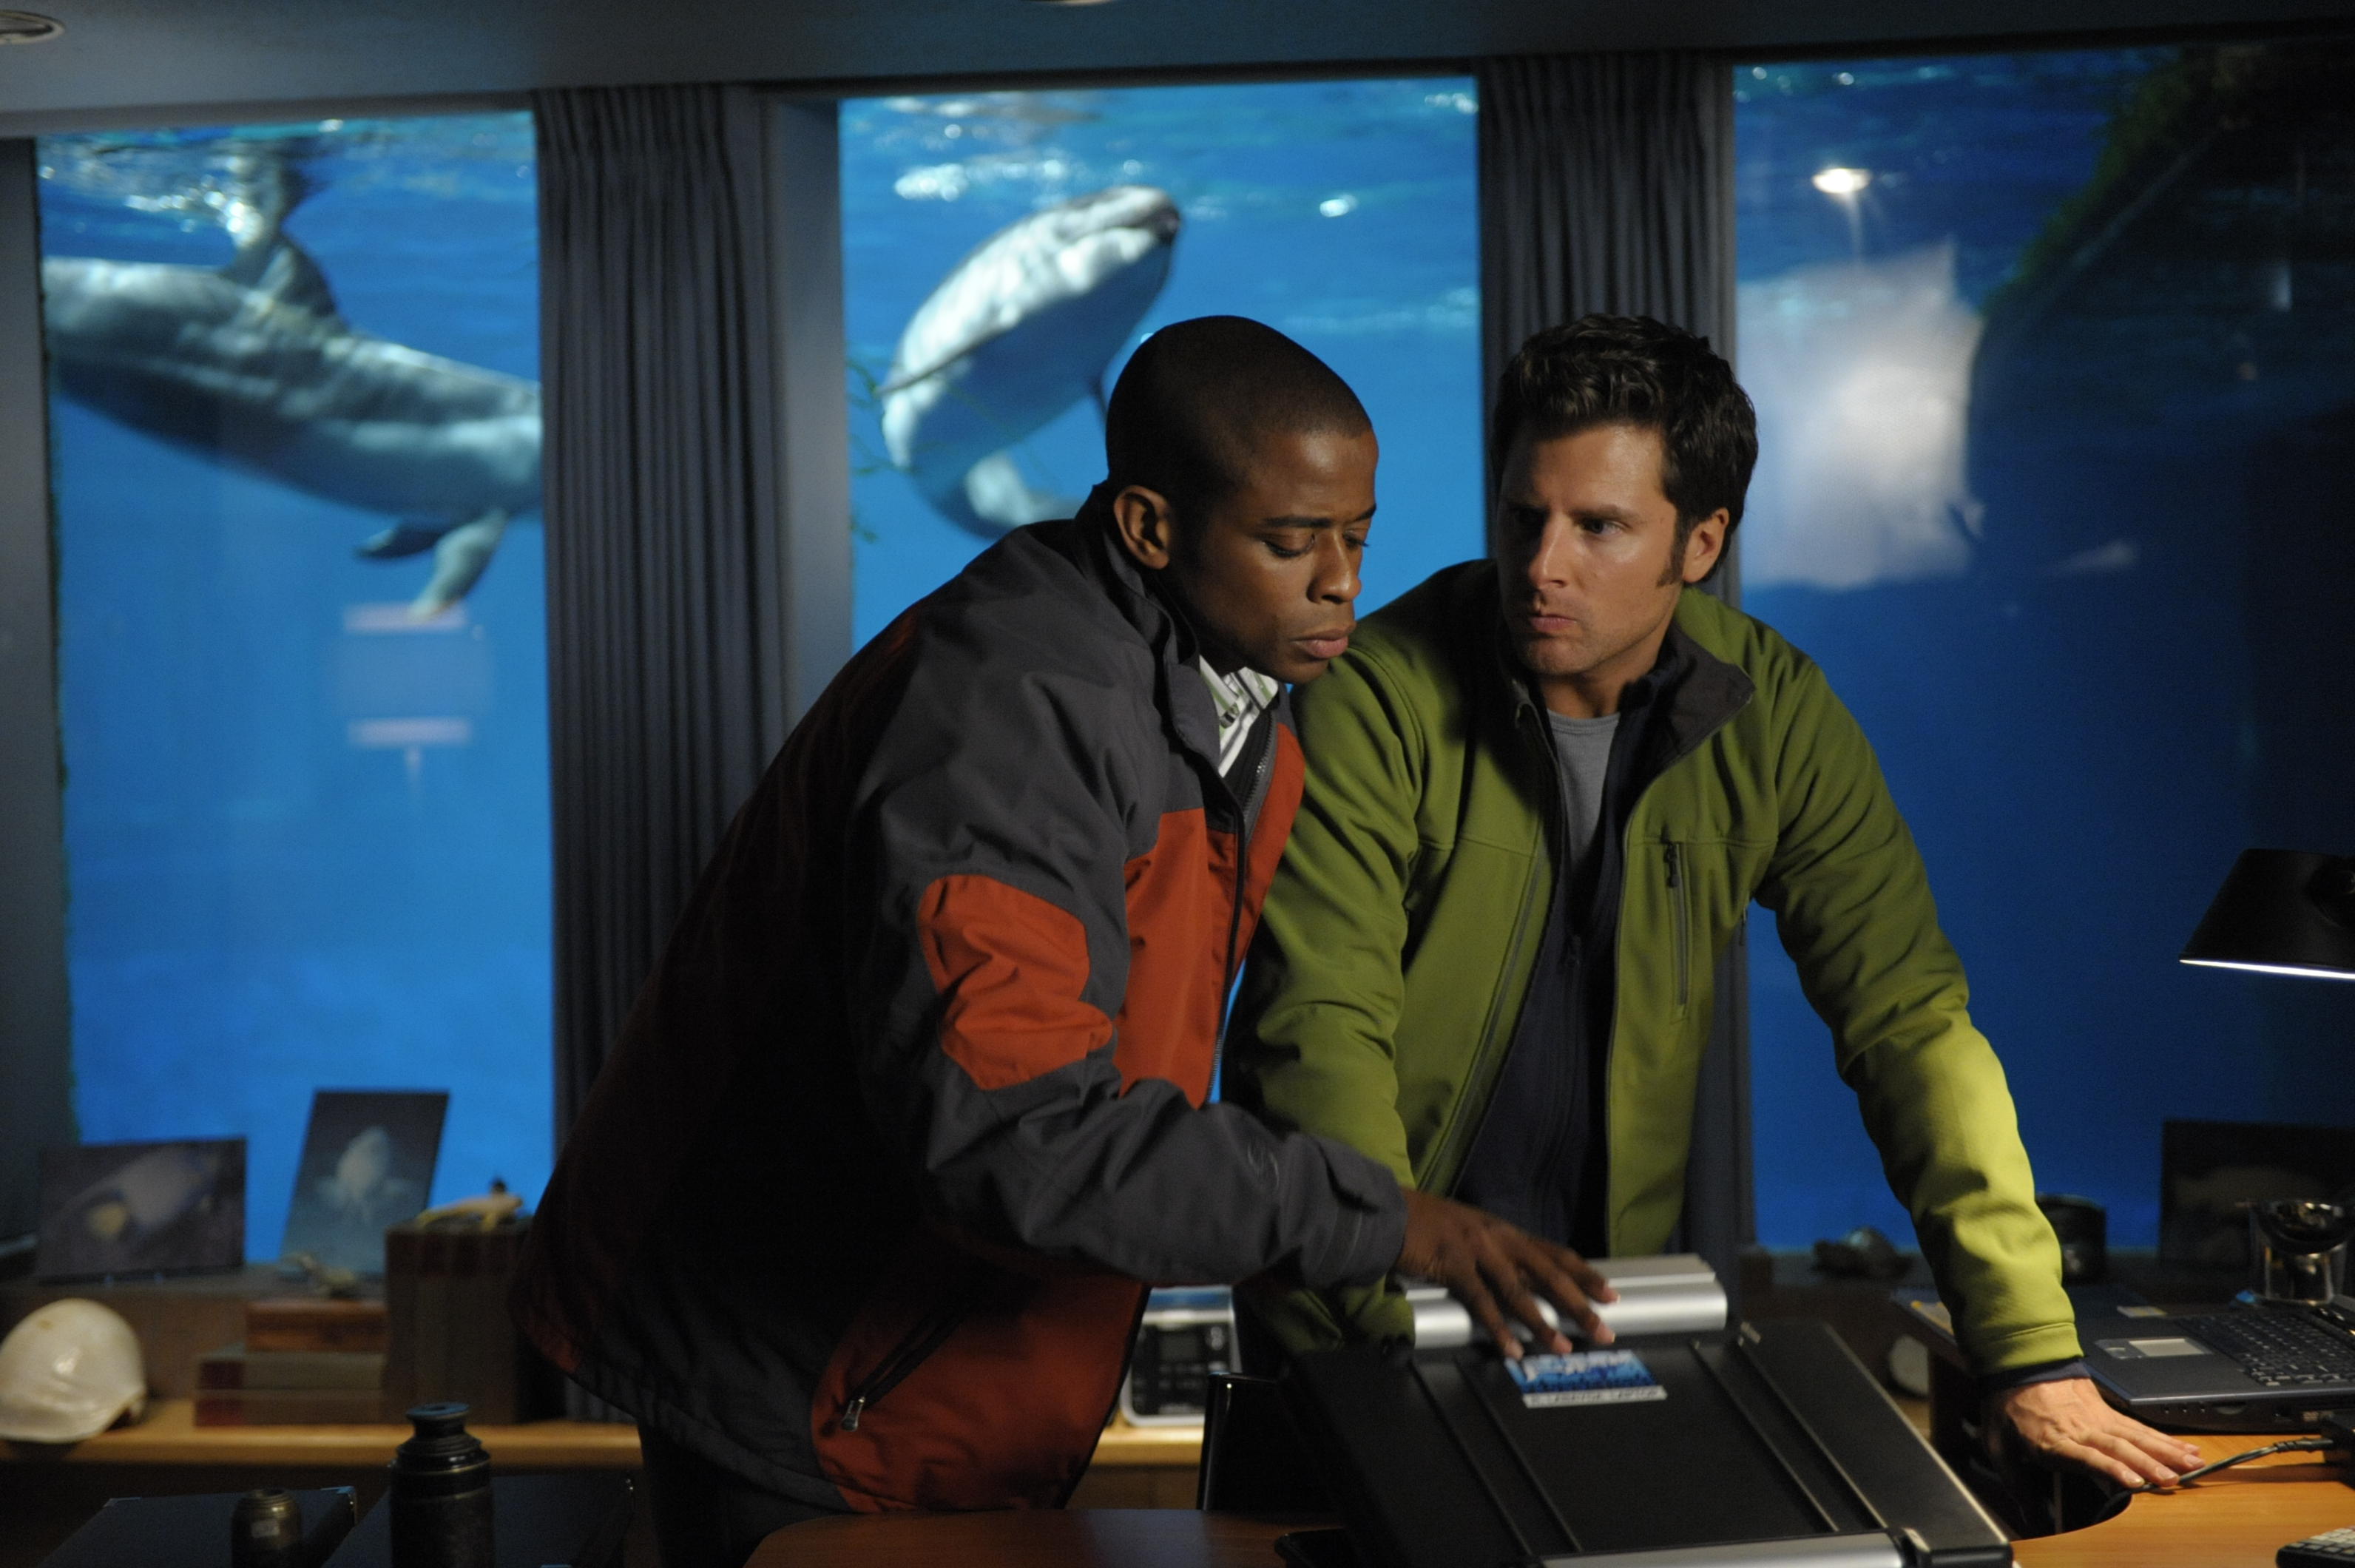 Continuing their third season on USA, the gang from PSYCH is back with